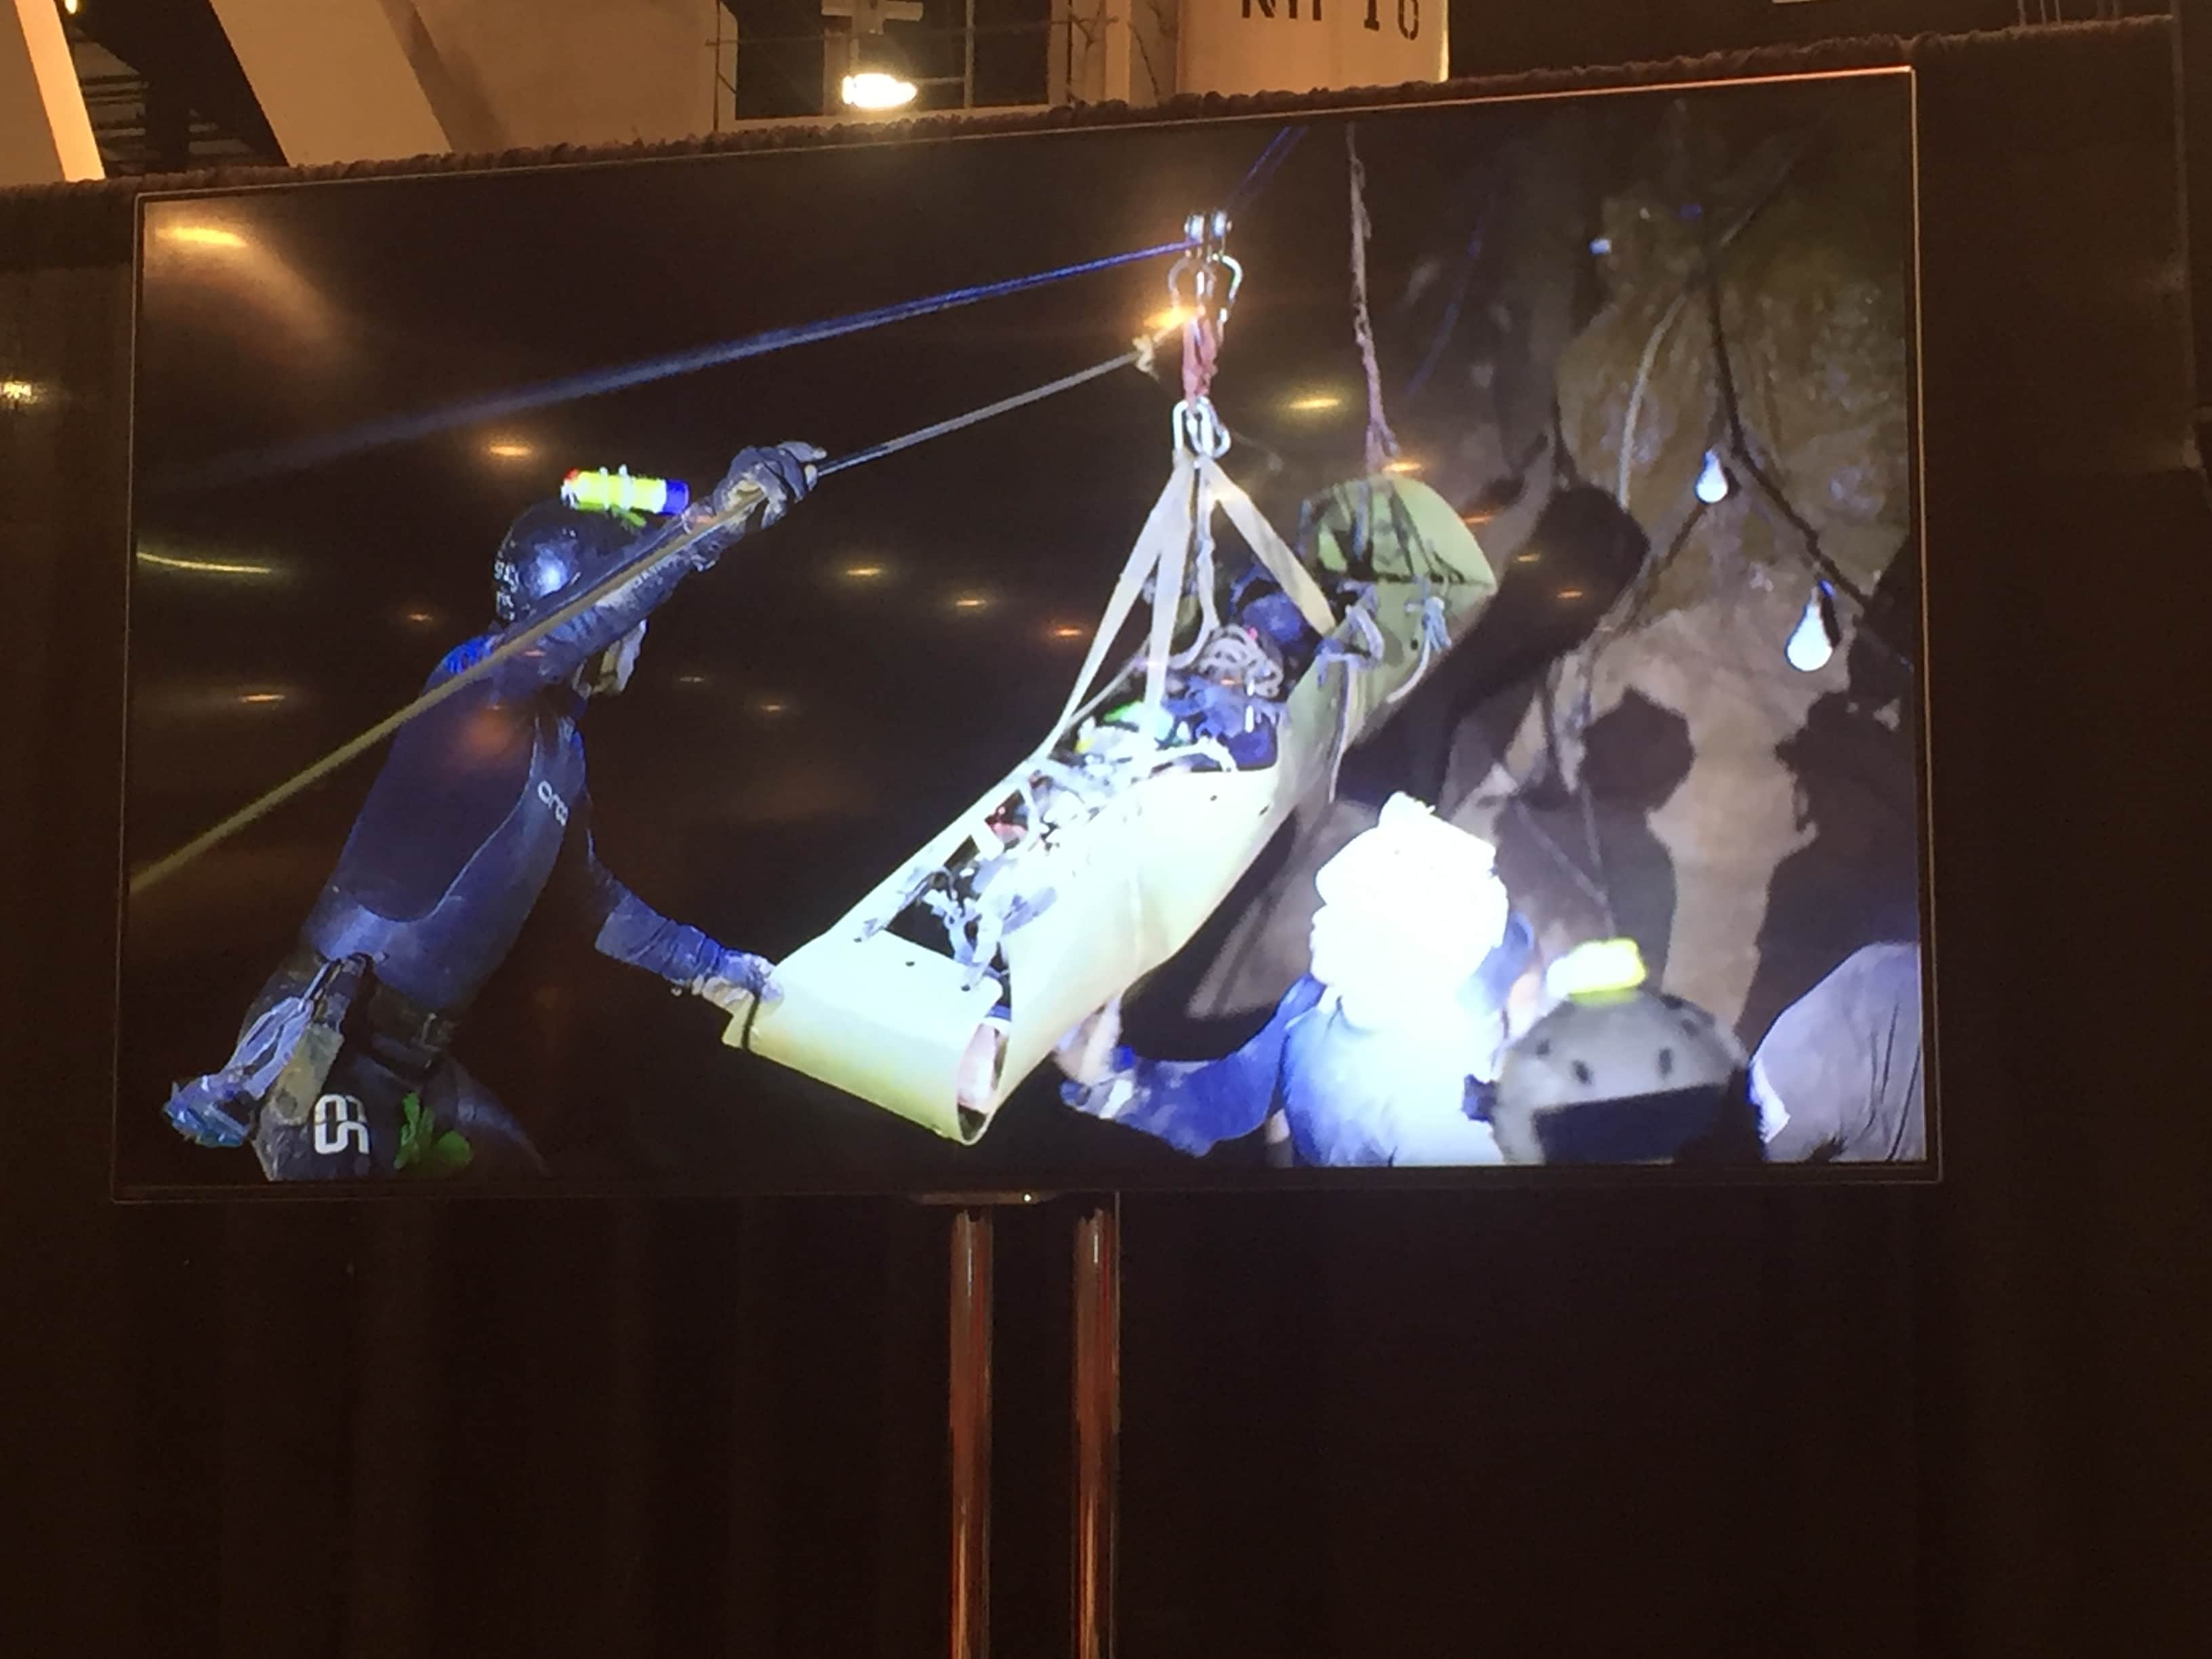 'United as One': Erik Brown's DEMA 2018 Tale Of The Thai Cave Rescue